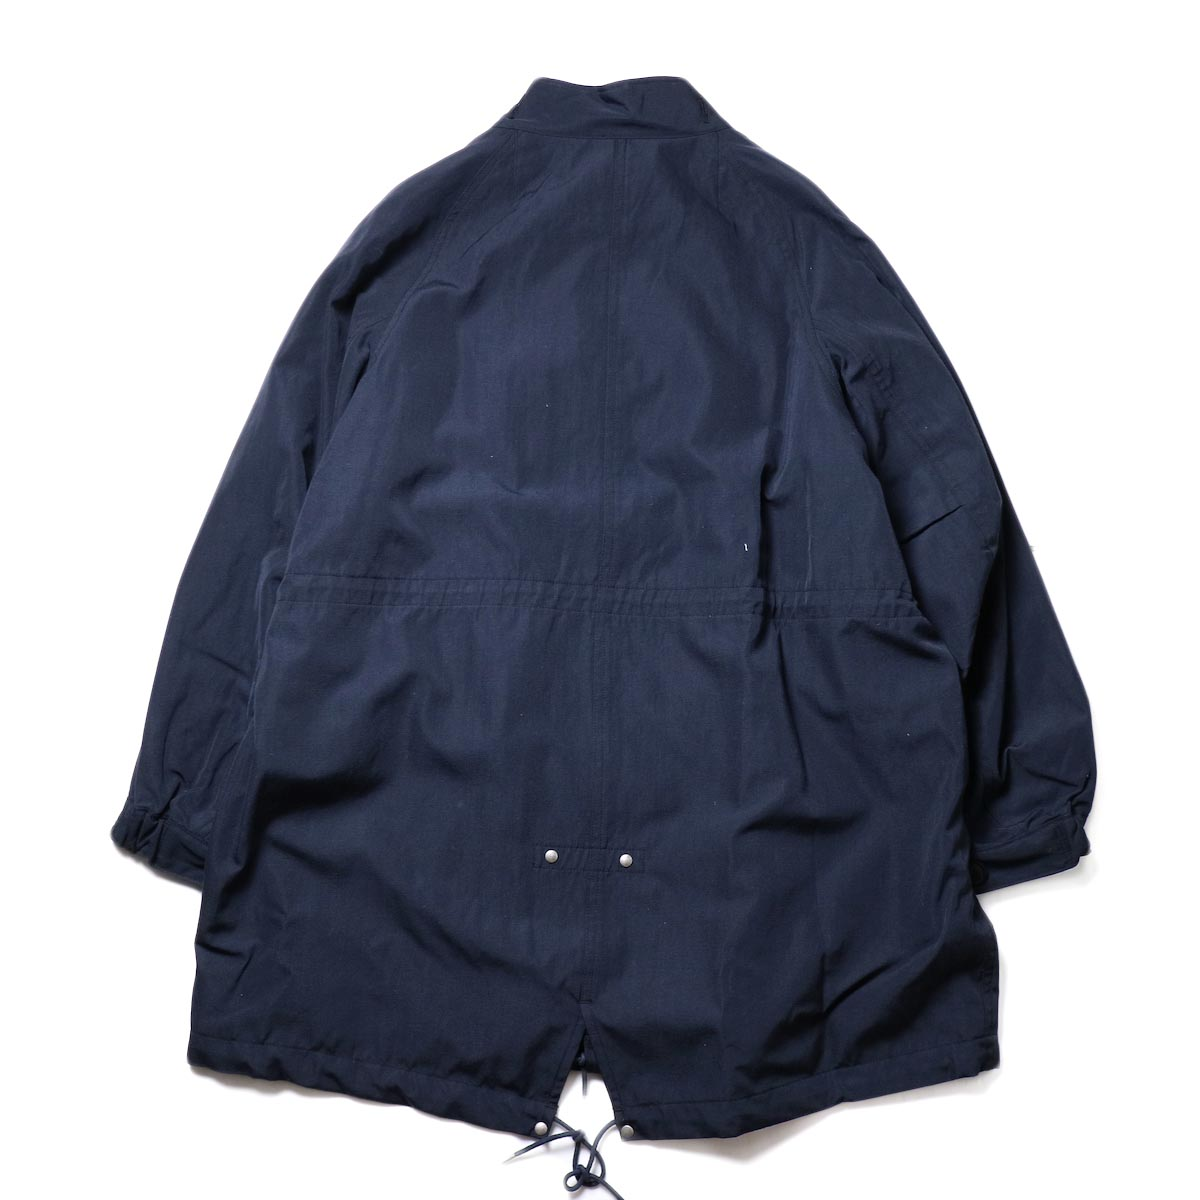 visvim / SIX-FIVE FISHTAIL PARKA (W/L) (Navy)背面